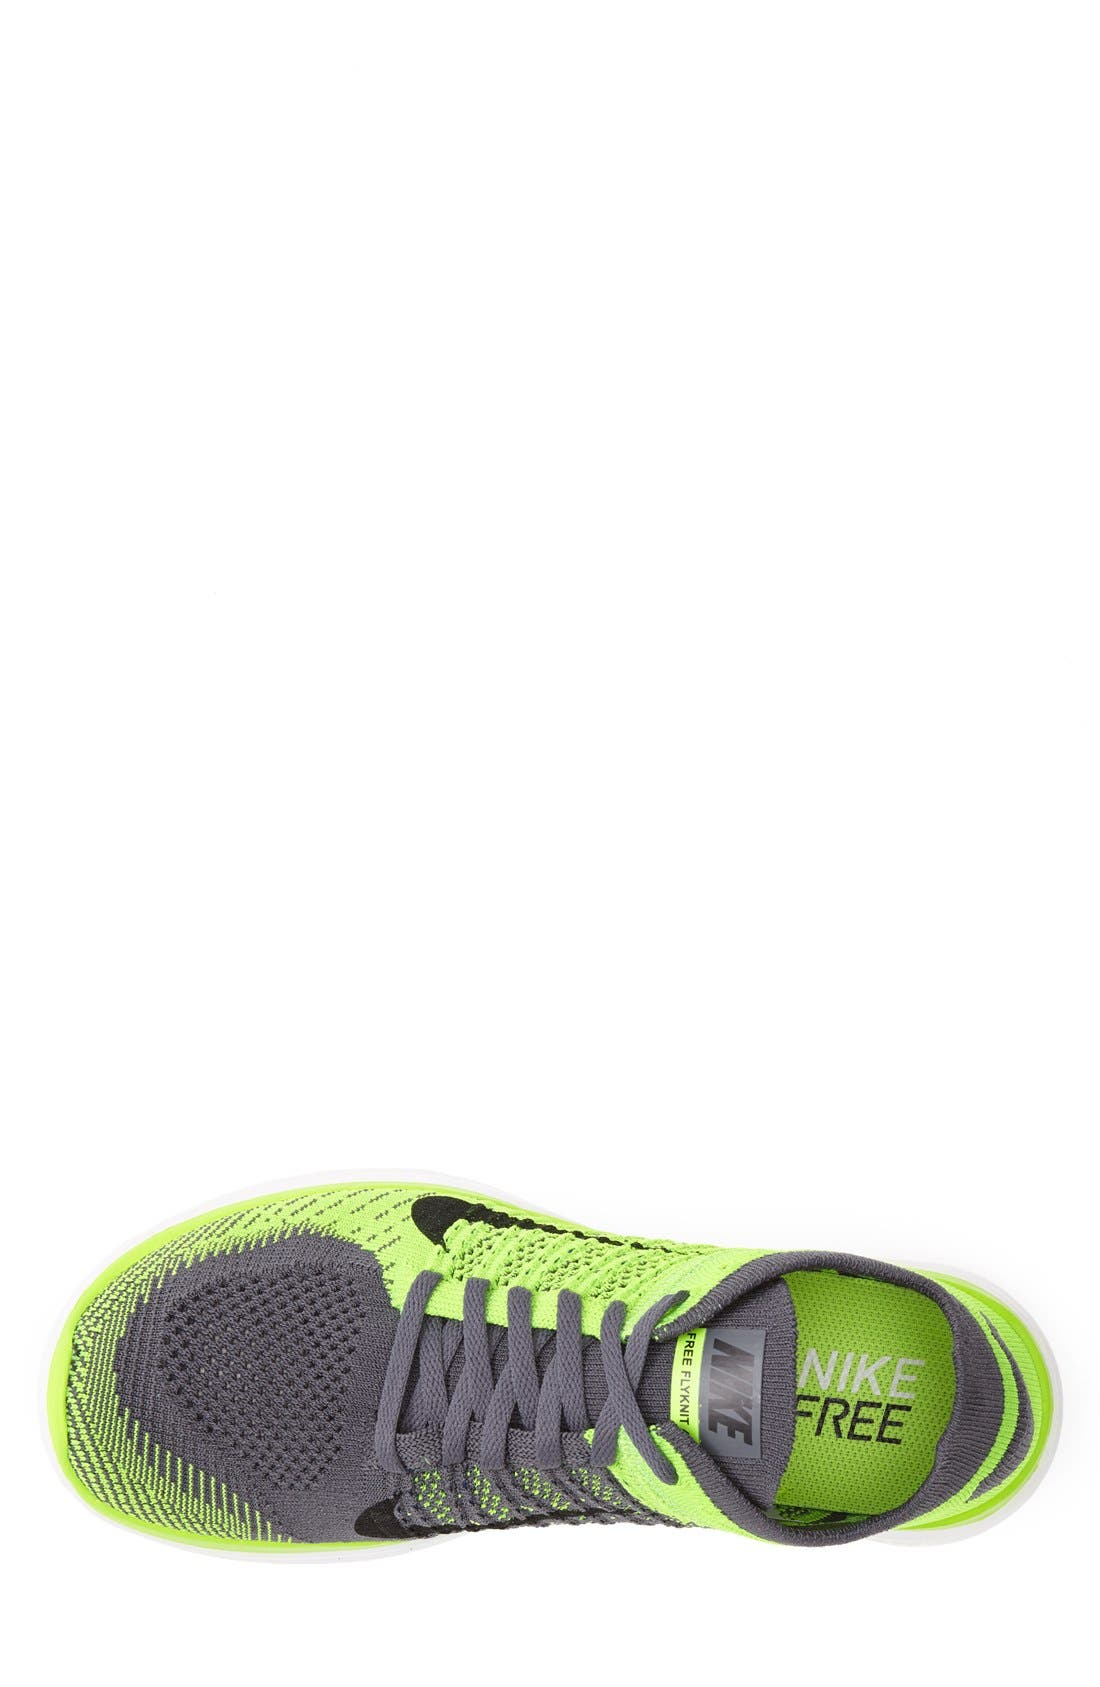 Alternate Image 3  - Nike 'Free 4.0 Flyknit' Running Shoe (Men)